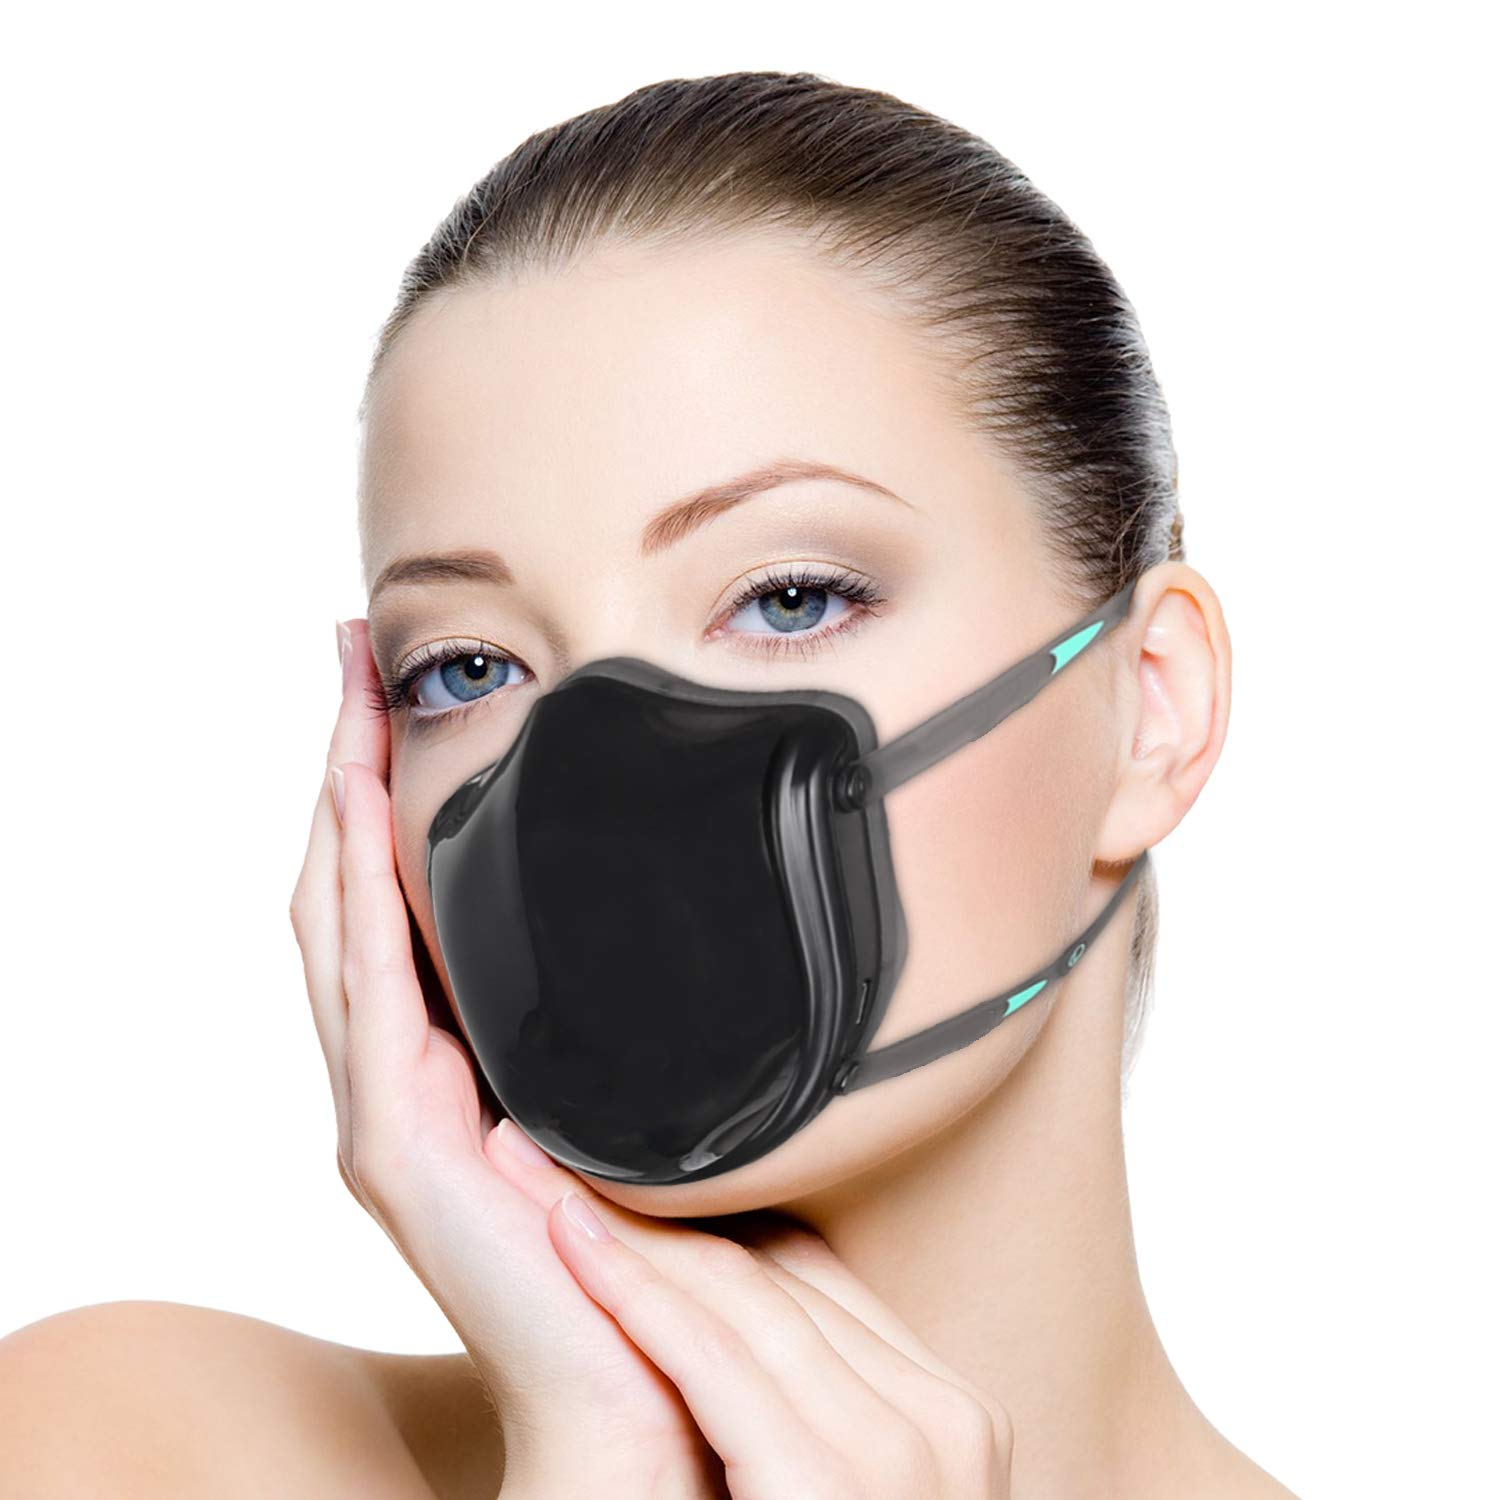 Electric Mask Respirator, Air Purifying Dust proof Mask For PM2.5 Pollution, Gardening, Travel, Ash